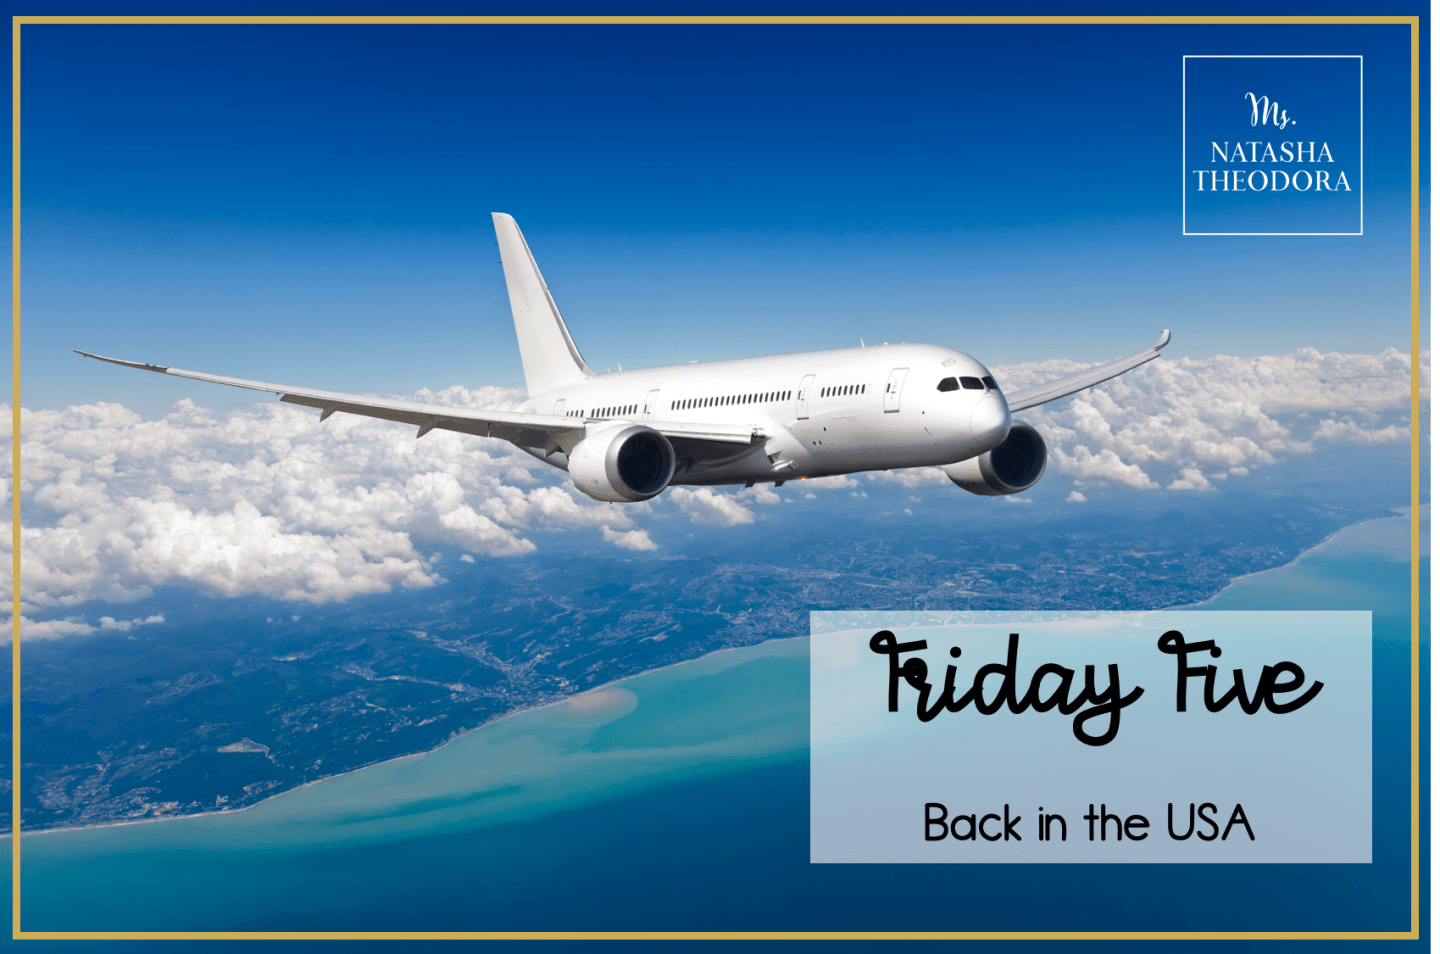 Friday Five: Back in the USA